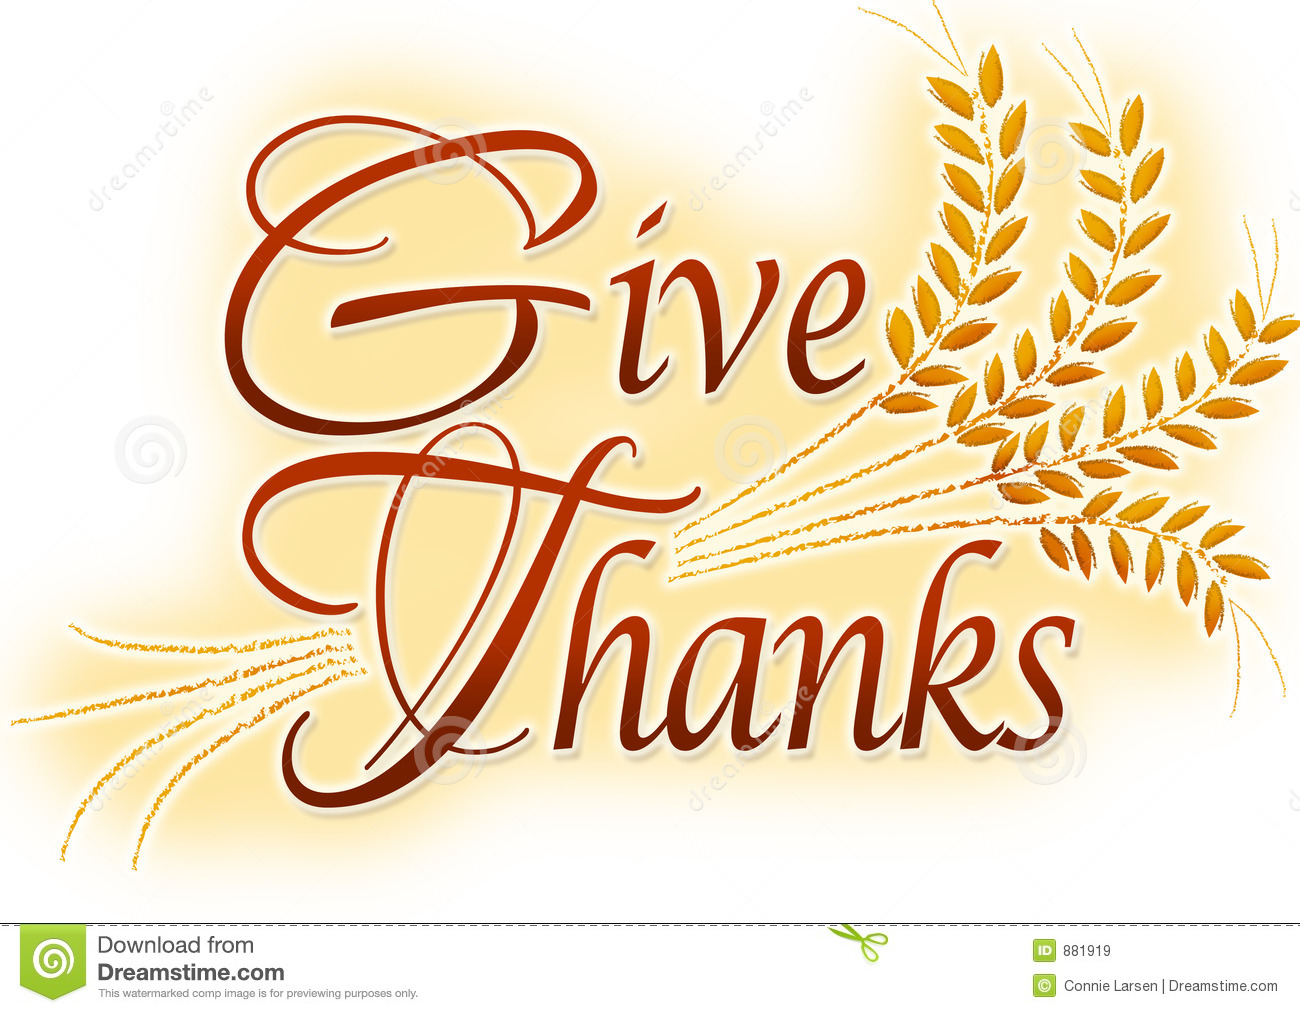 Give Thanks stock illustration. Illustration of clipart.